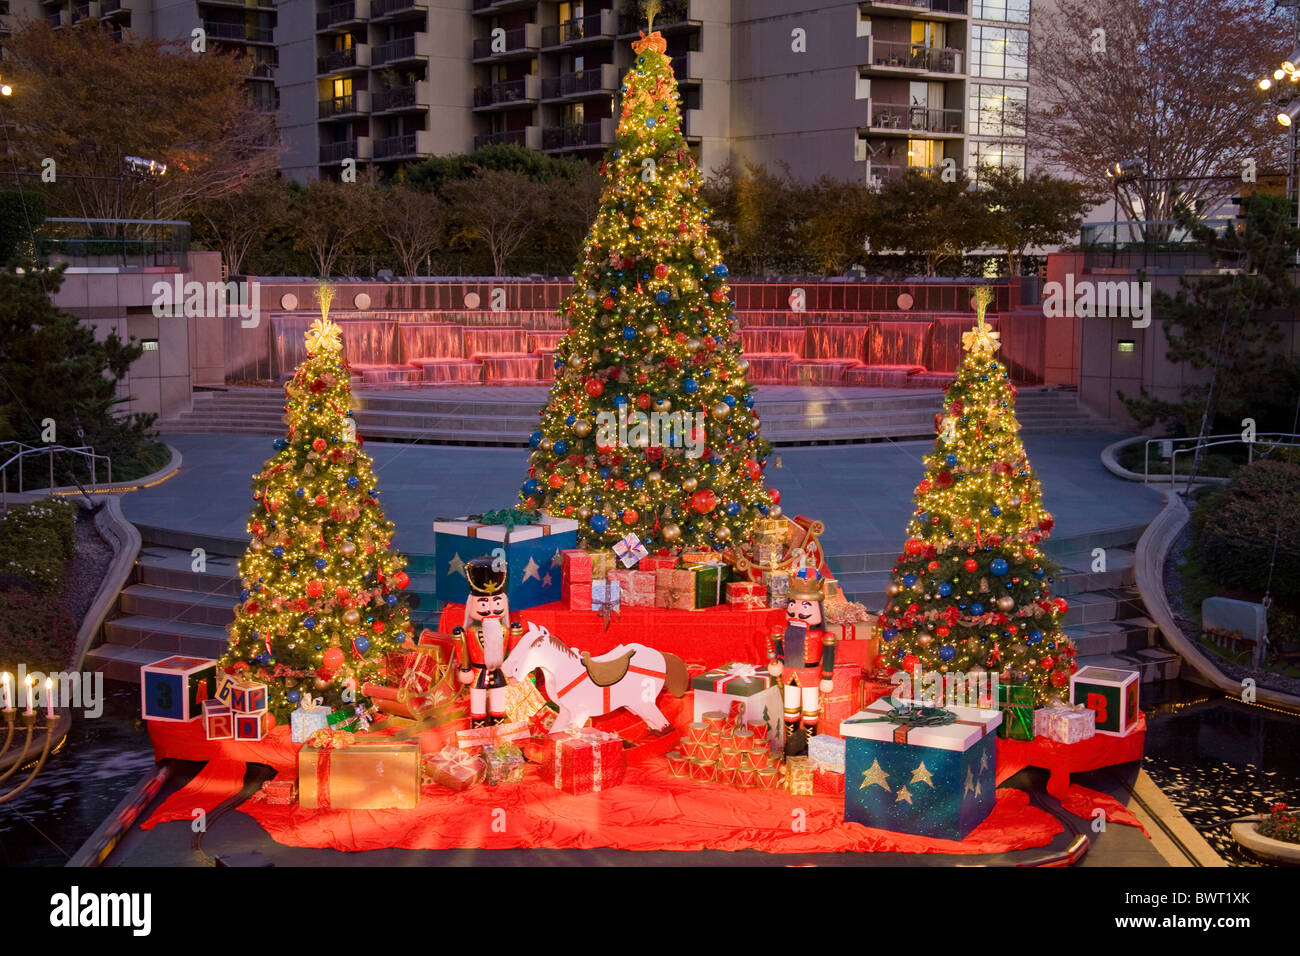 Water Court Christmas display and Tree, Bunker Hill, Downtown Los Angeles, California, USA - Stock Image